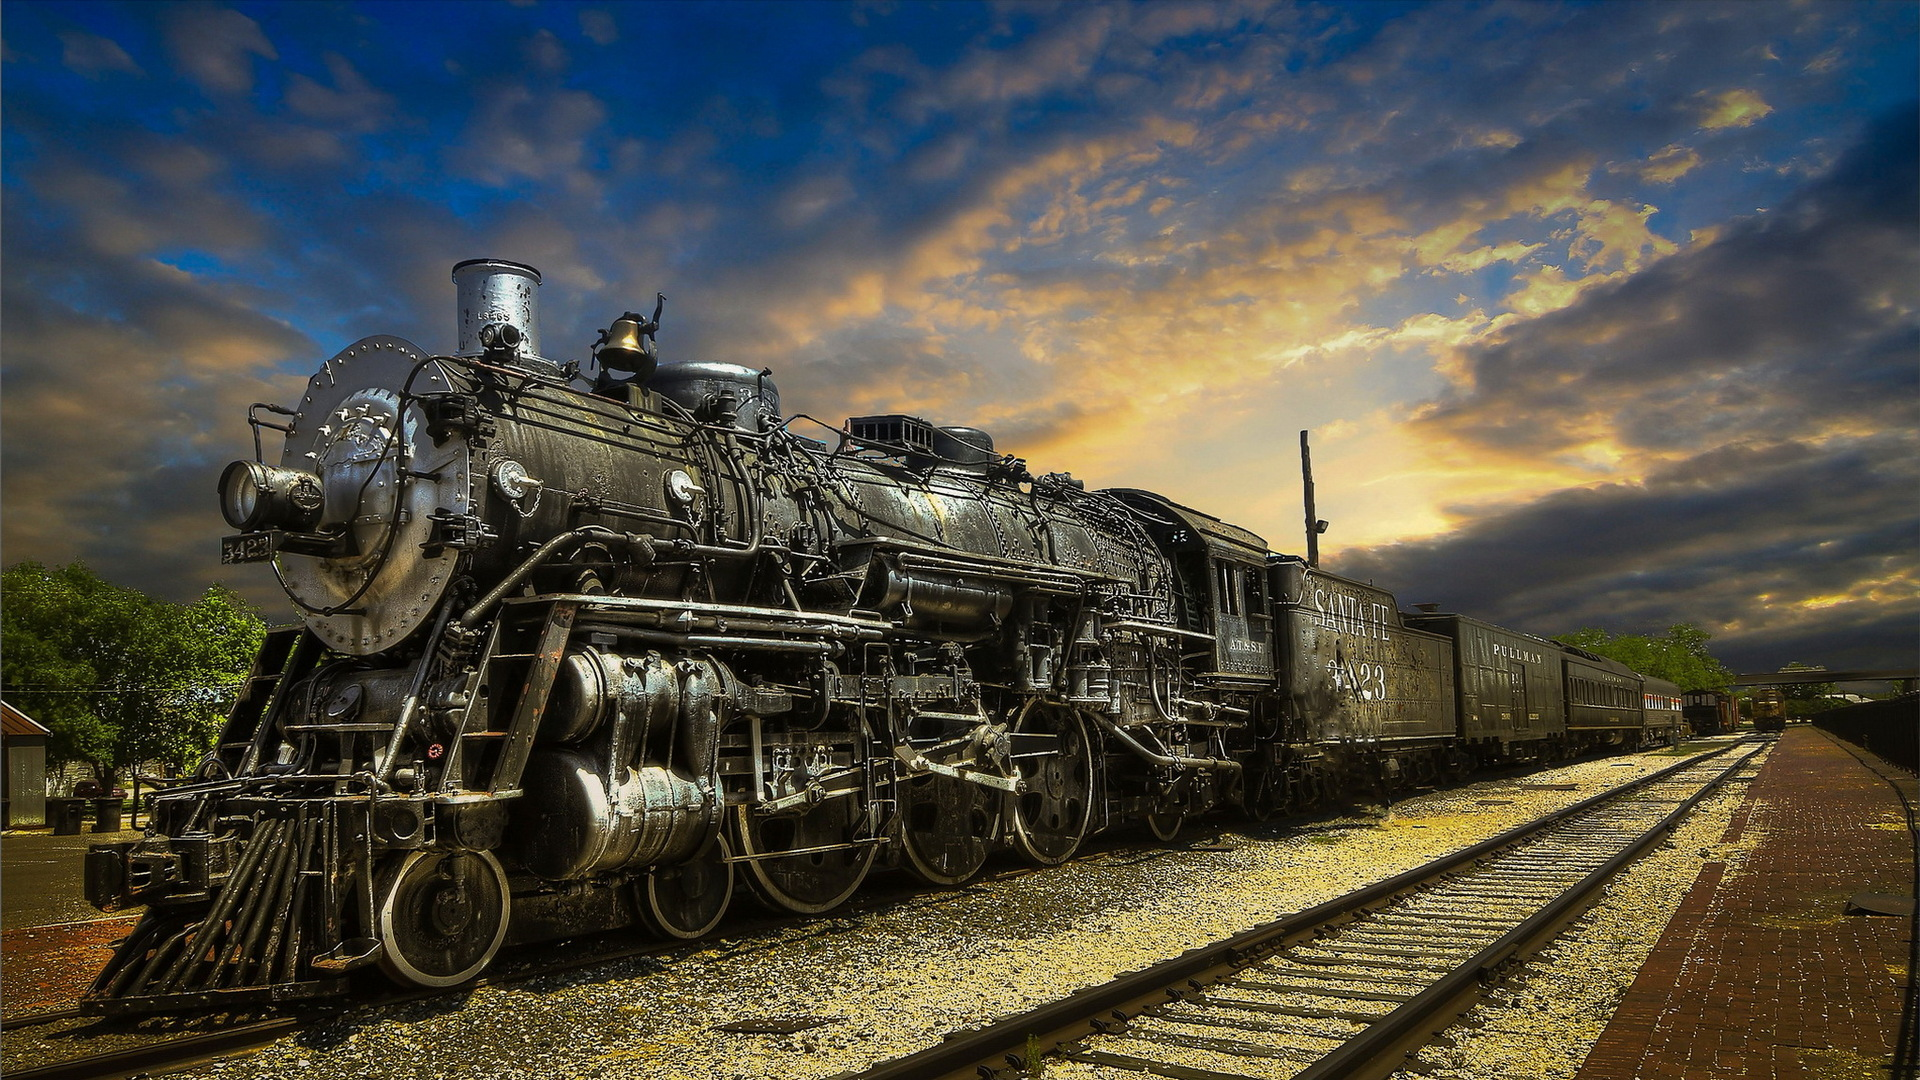 Fantastic Locomotive Wallpaper